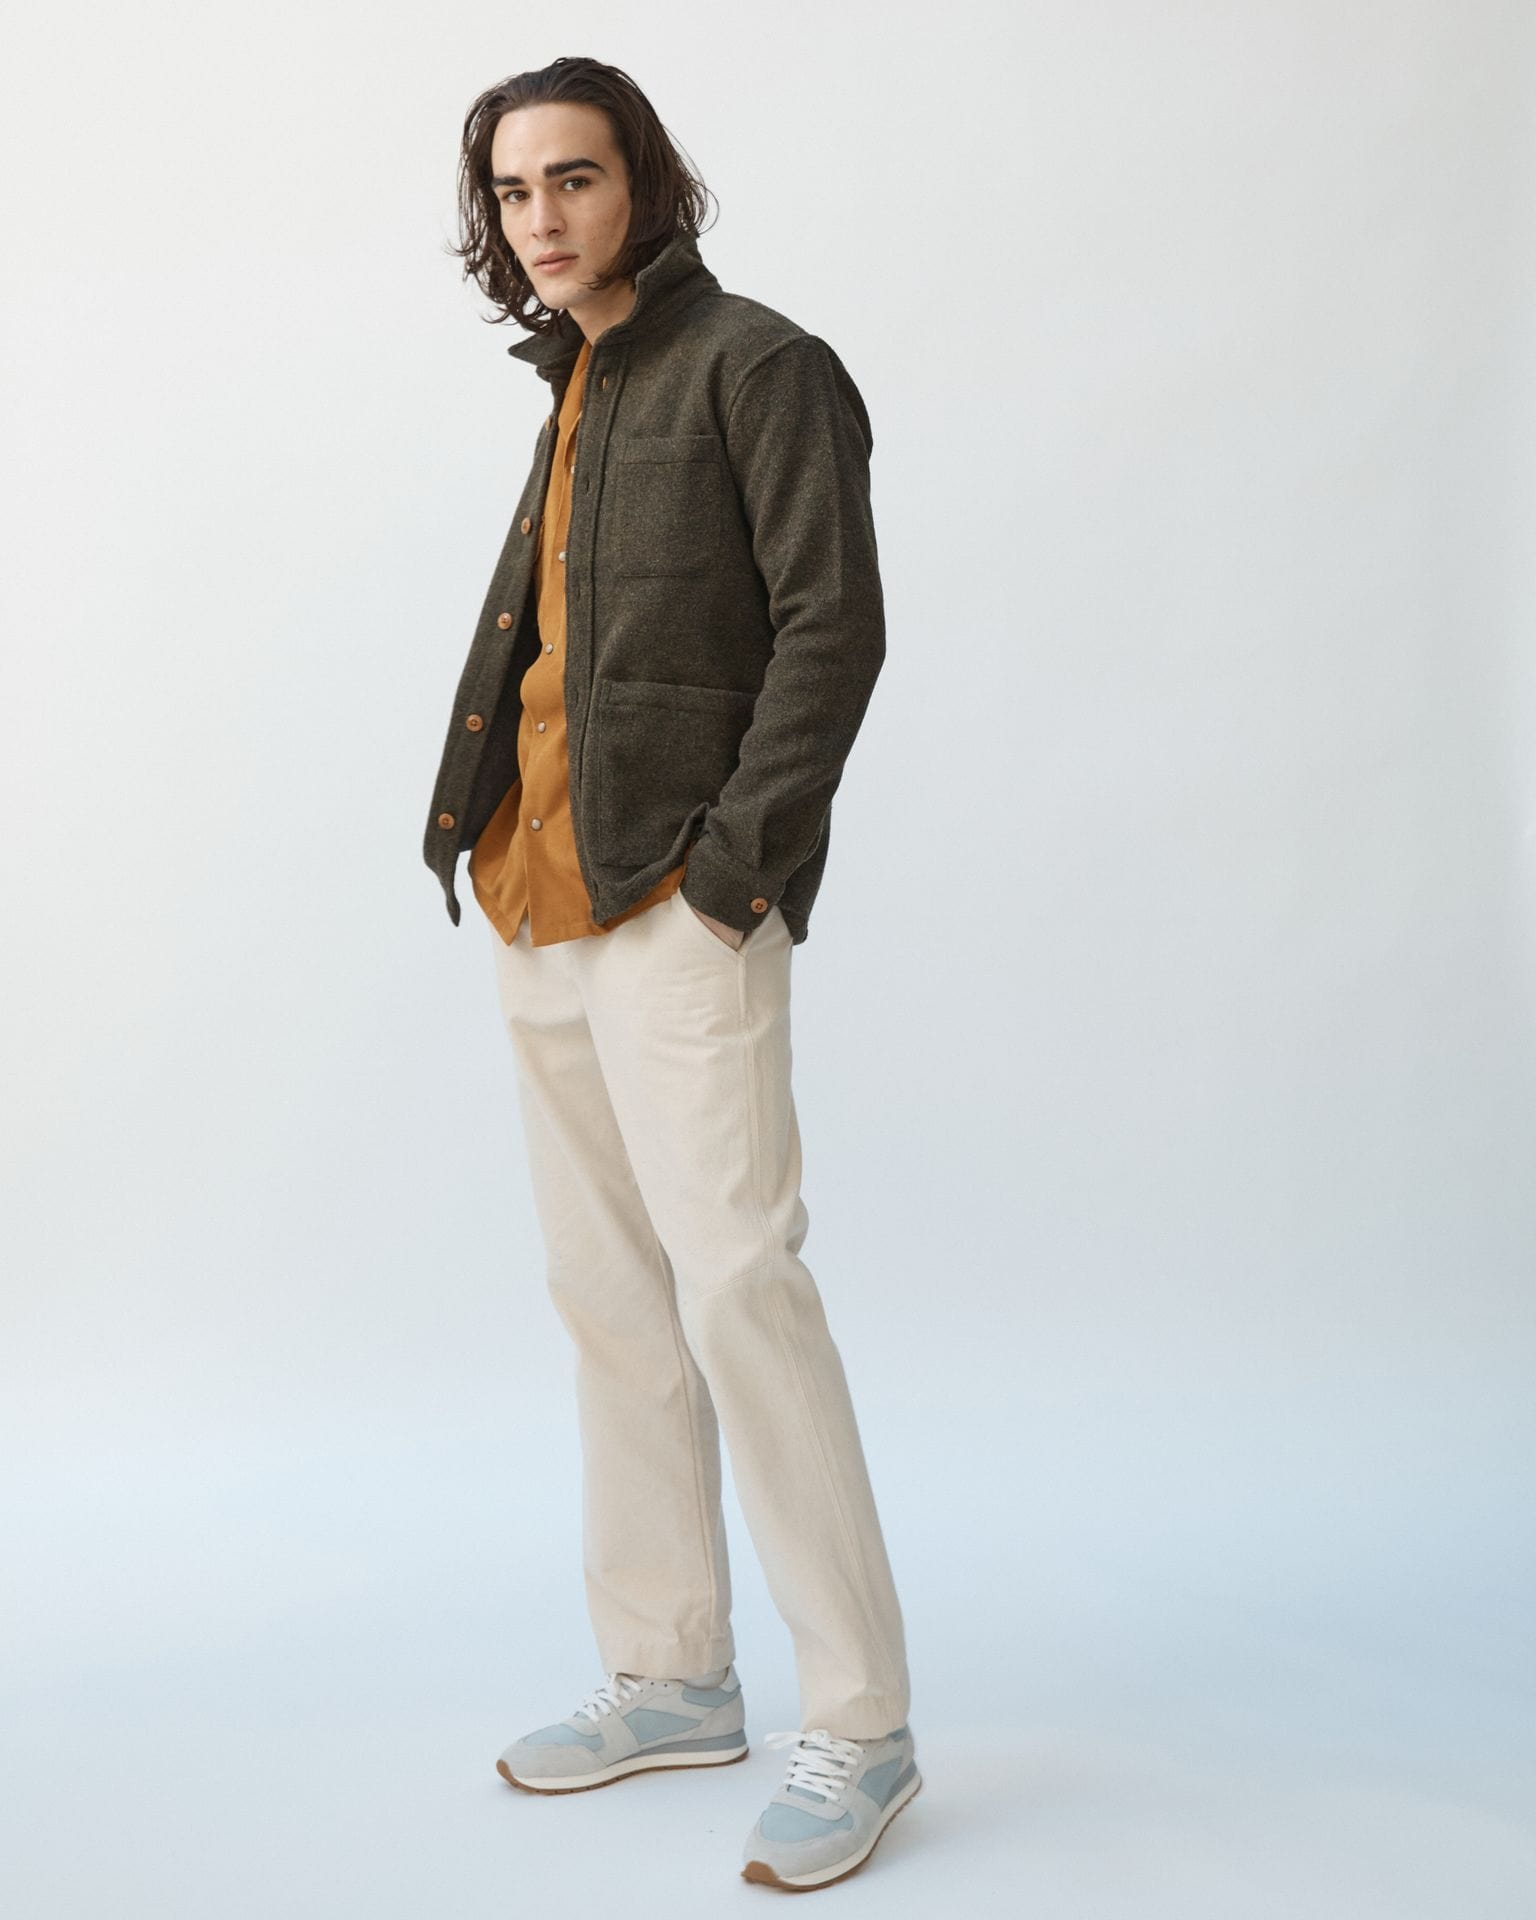 Lambswool (18oz) Jacket - Loden